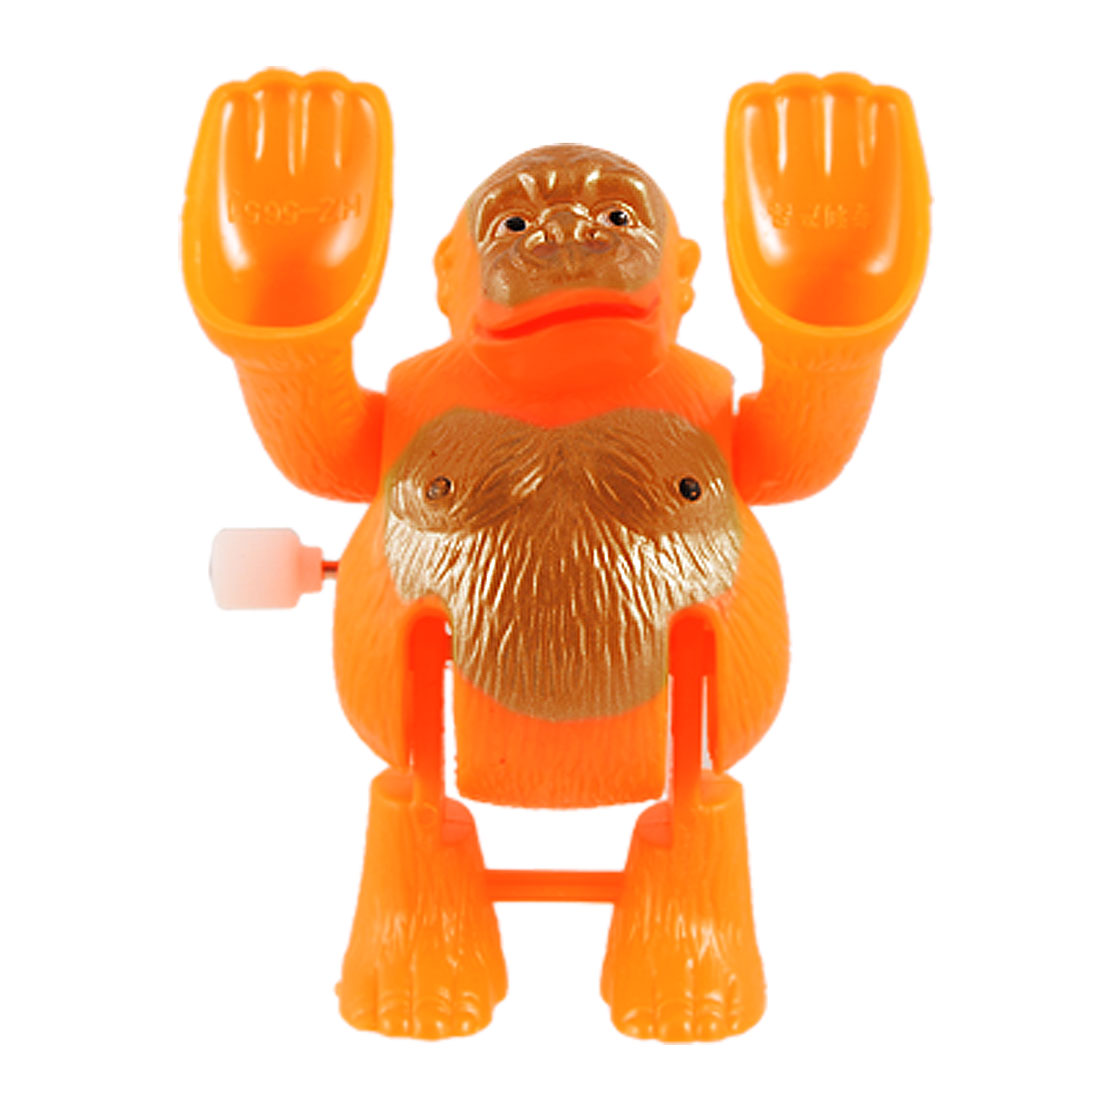 Children Clockwork Spring Tumbling Somersault Cartoon Monkey Toy Orange